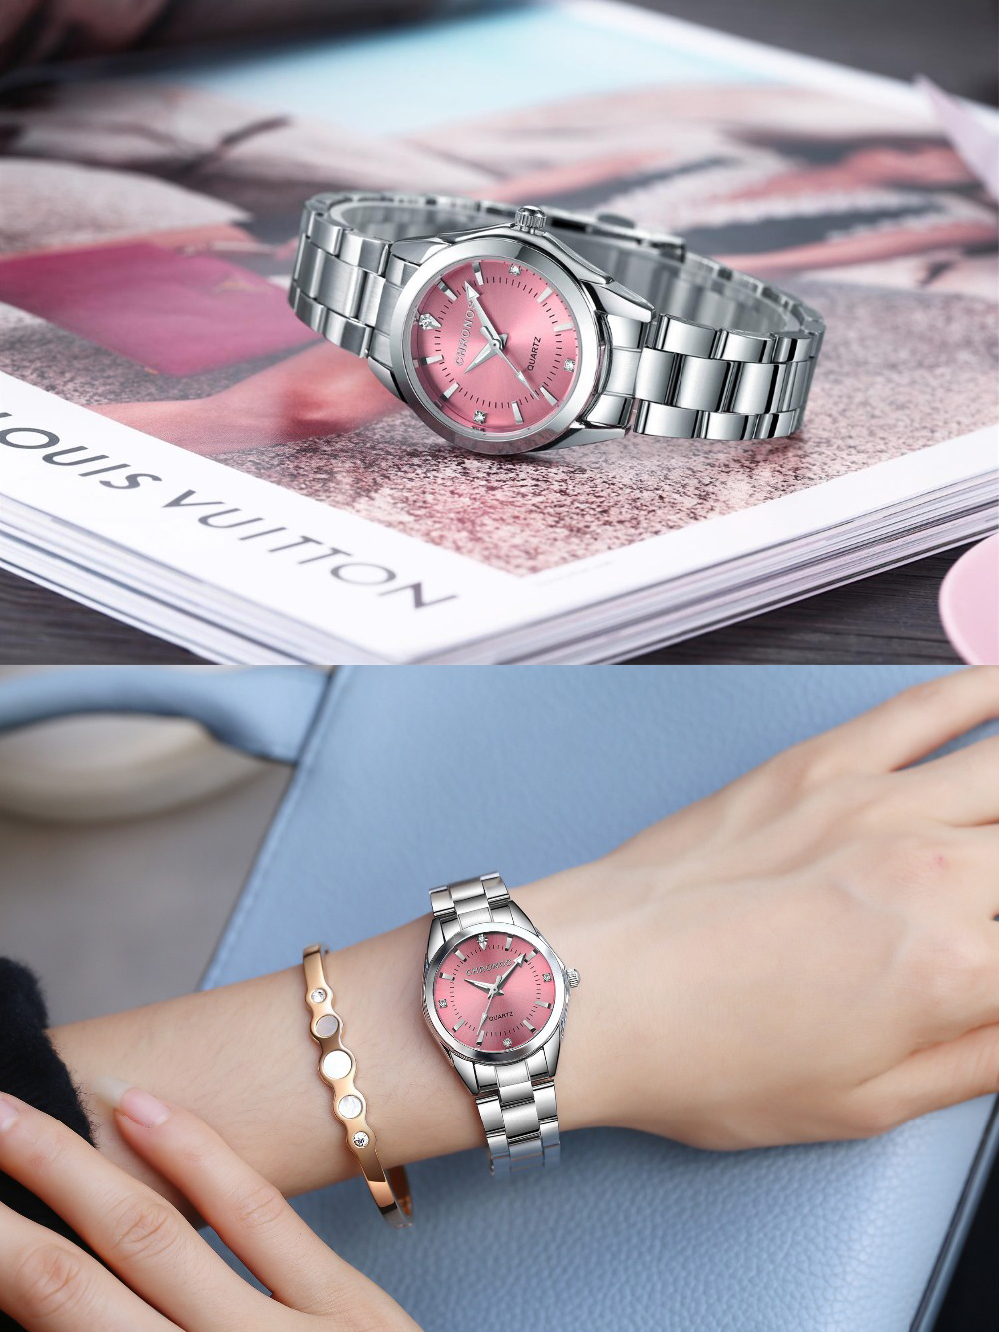 CHRONOS Watches Ladies Business-Watch Quartz-Movement Rhinestone Japanese Women Luxury